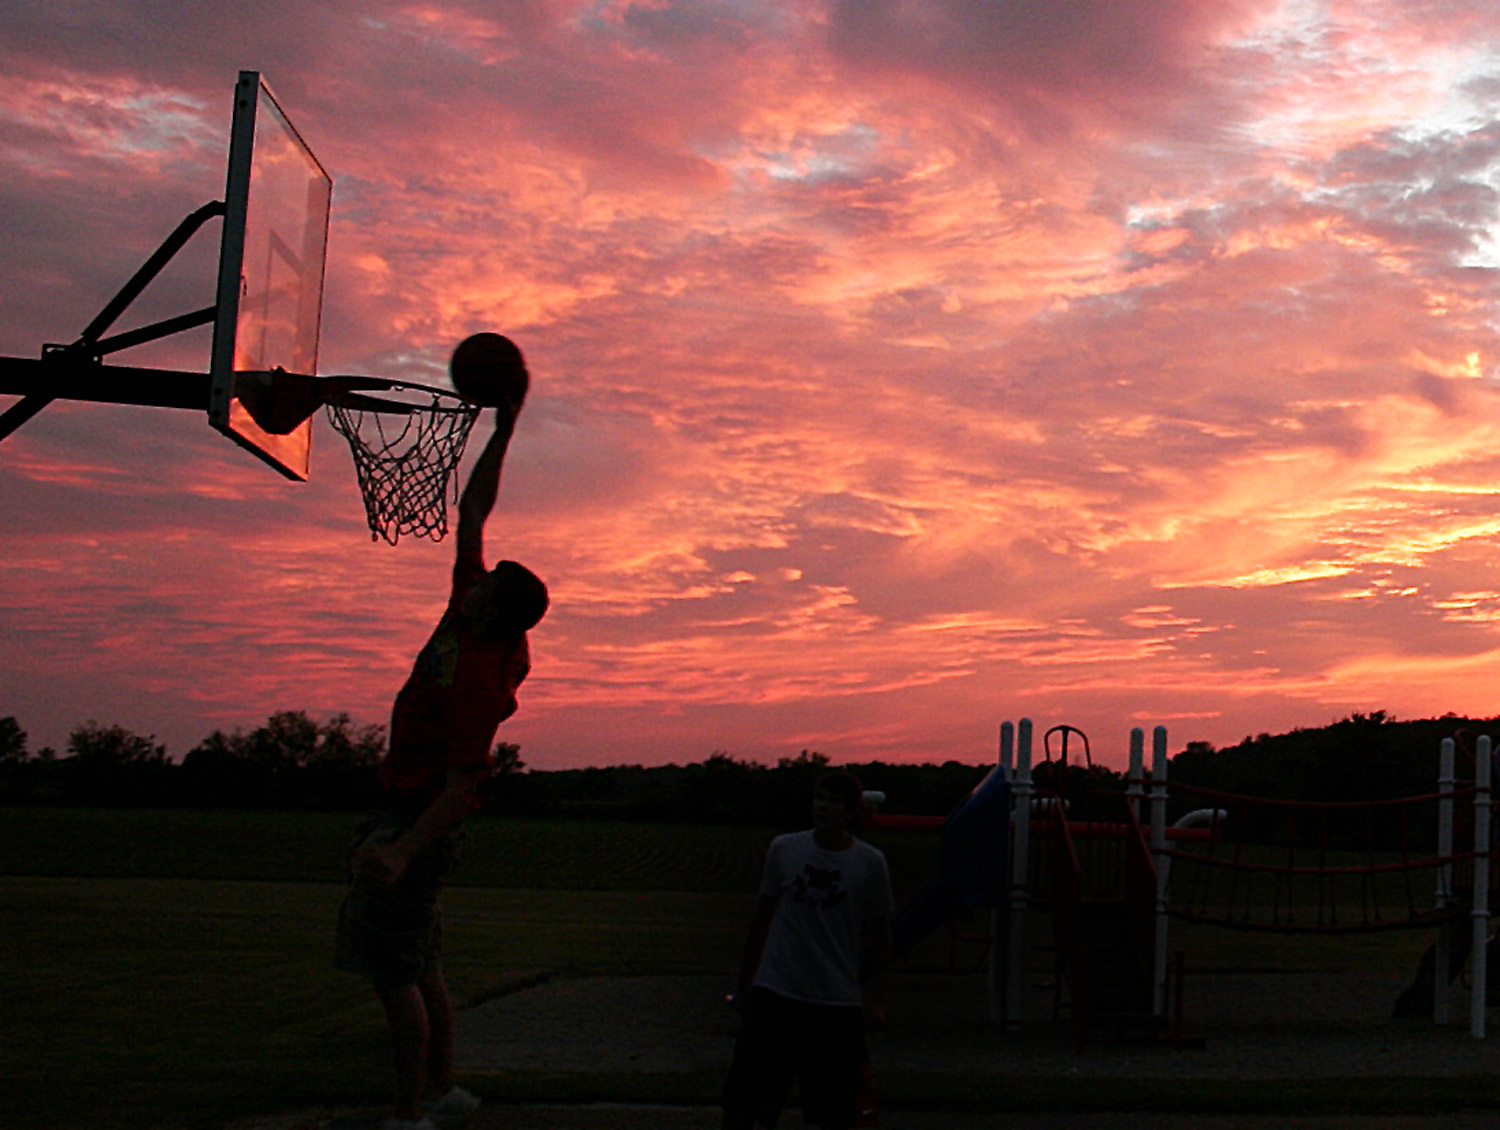 A typical Indiana scene plays out at Kennard Elementary School as local kids test their skills on the playground basketball court. The striking sunset makes a nice backdrop for this scene, which could've been cut from the popular movie Hoosiers itself.